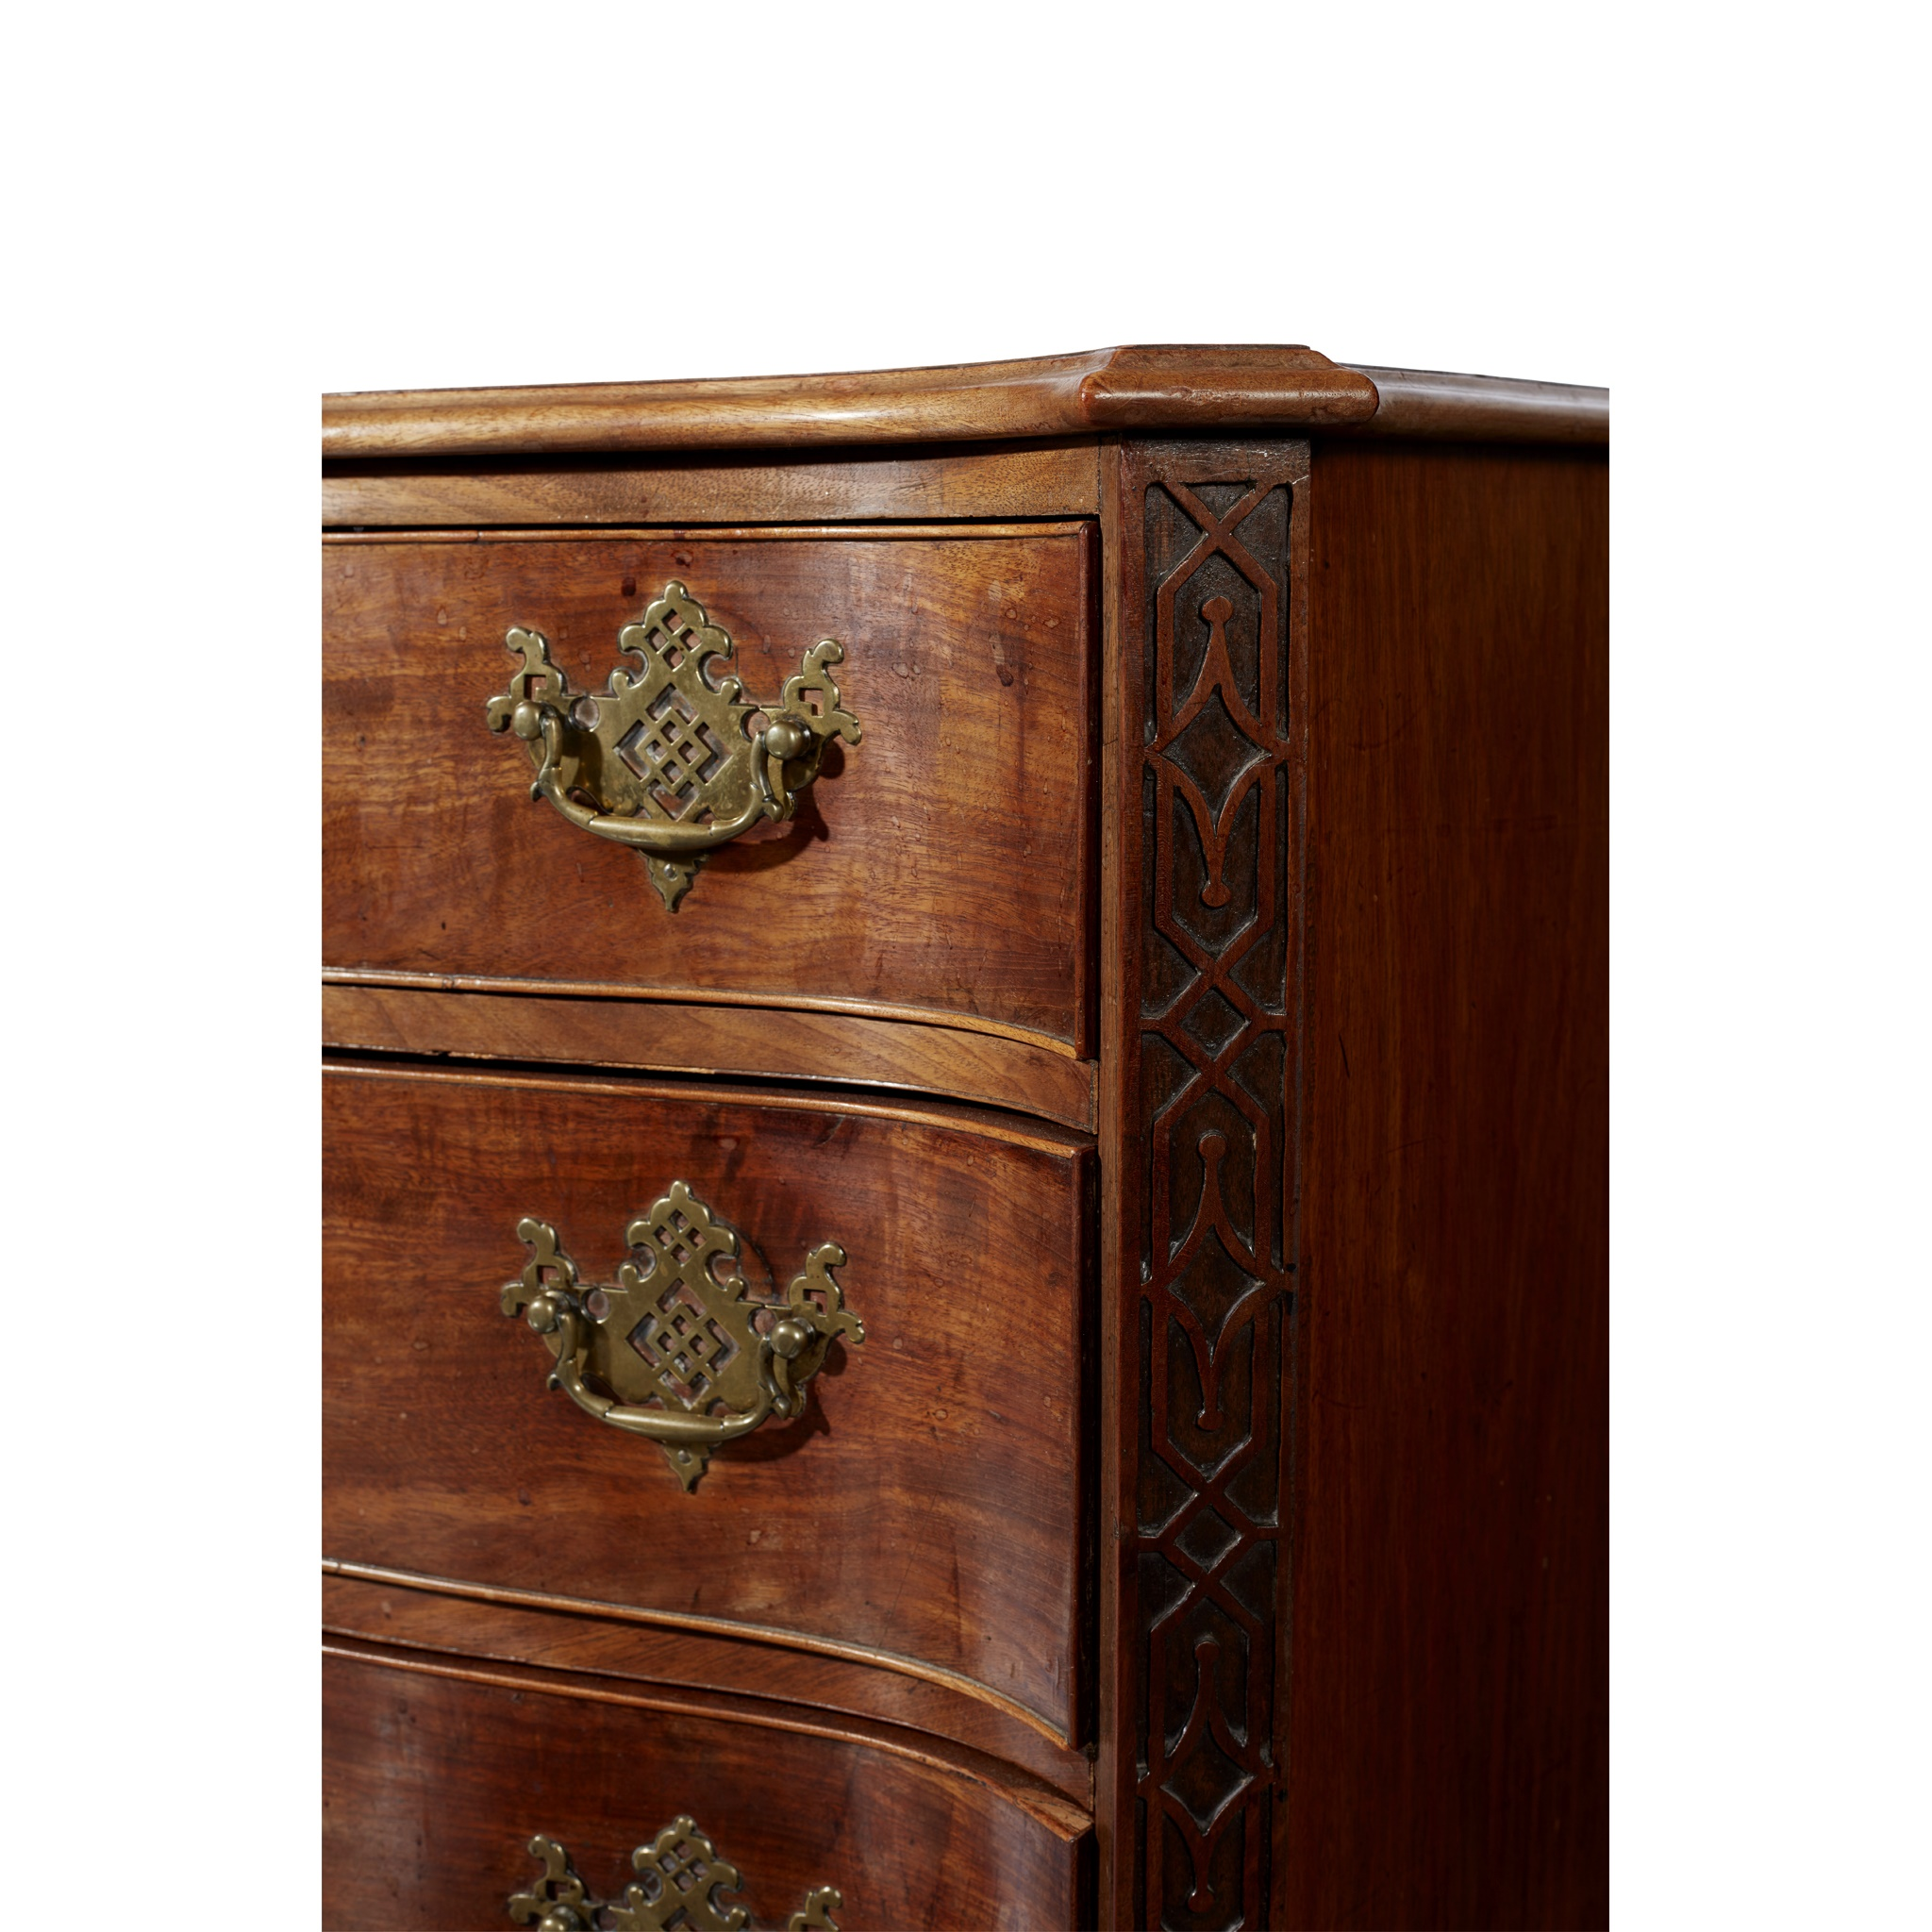 GEORGE III SERPENTINE CHEST OF DRAWERS MID 18TH CENTURY AND LATER - Image 2 of 6